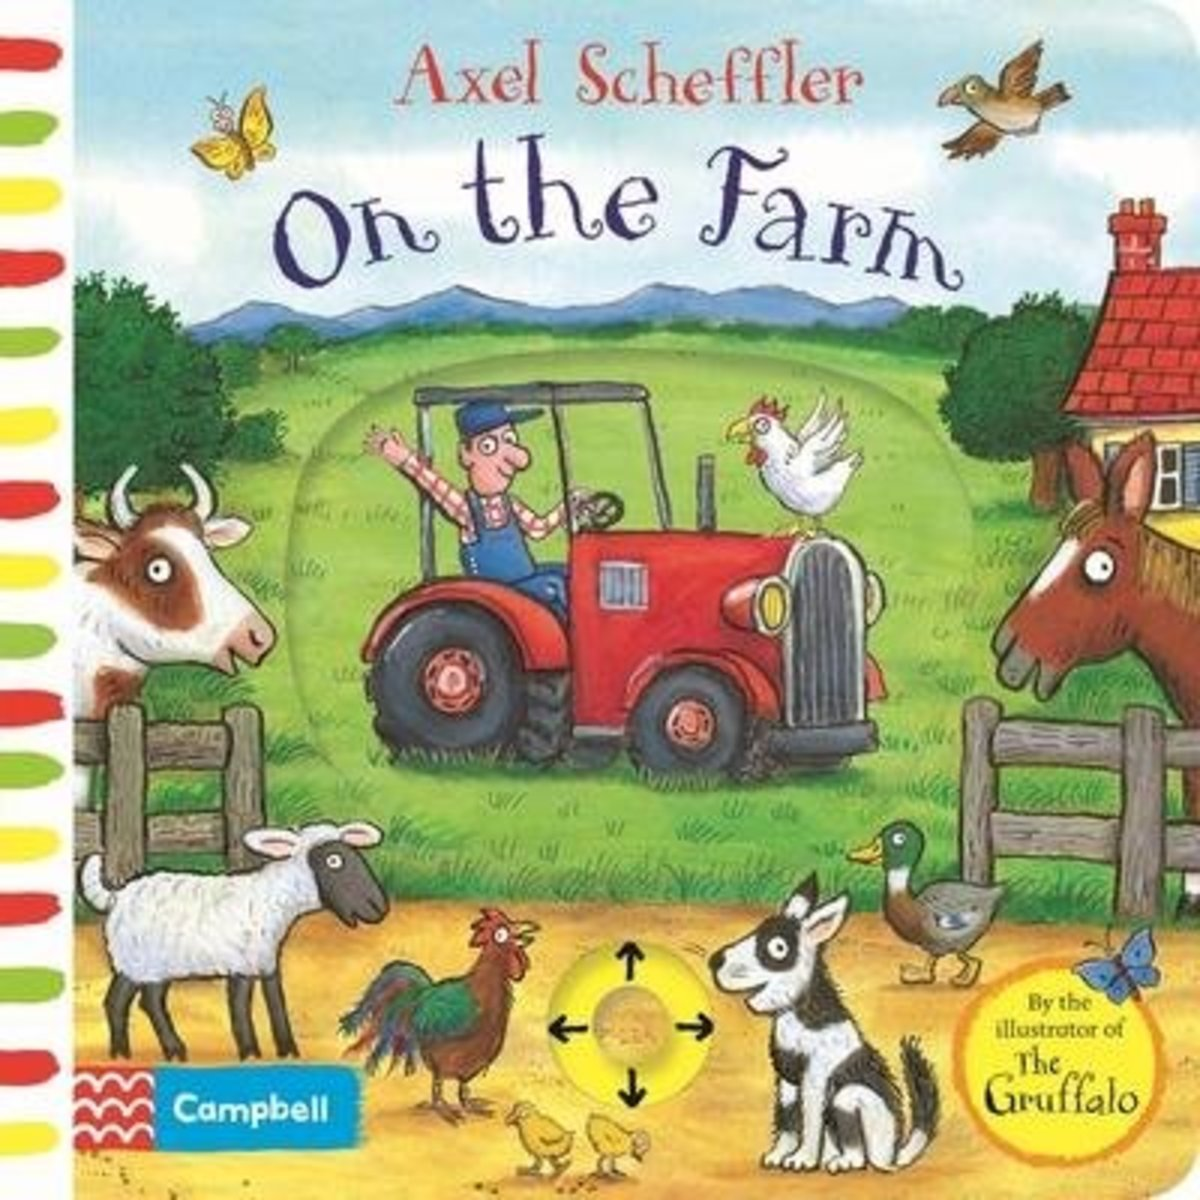 Axel Scheffler On the Farm: A push, pull, slide book